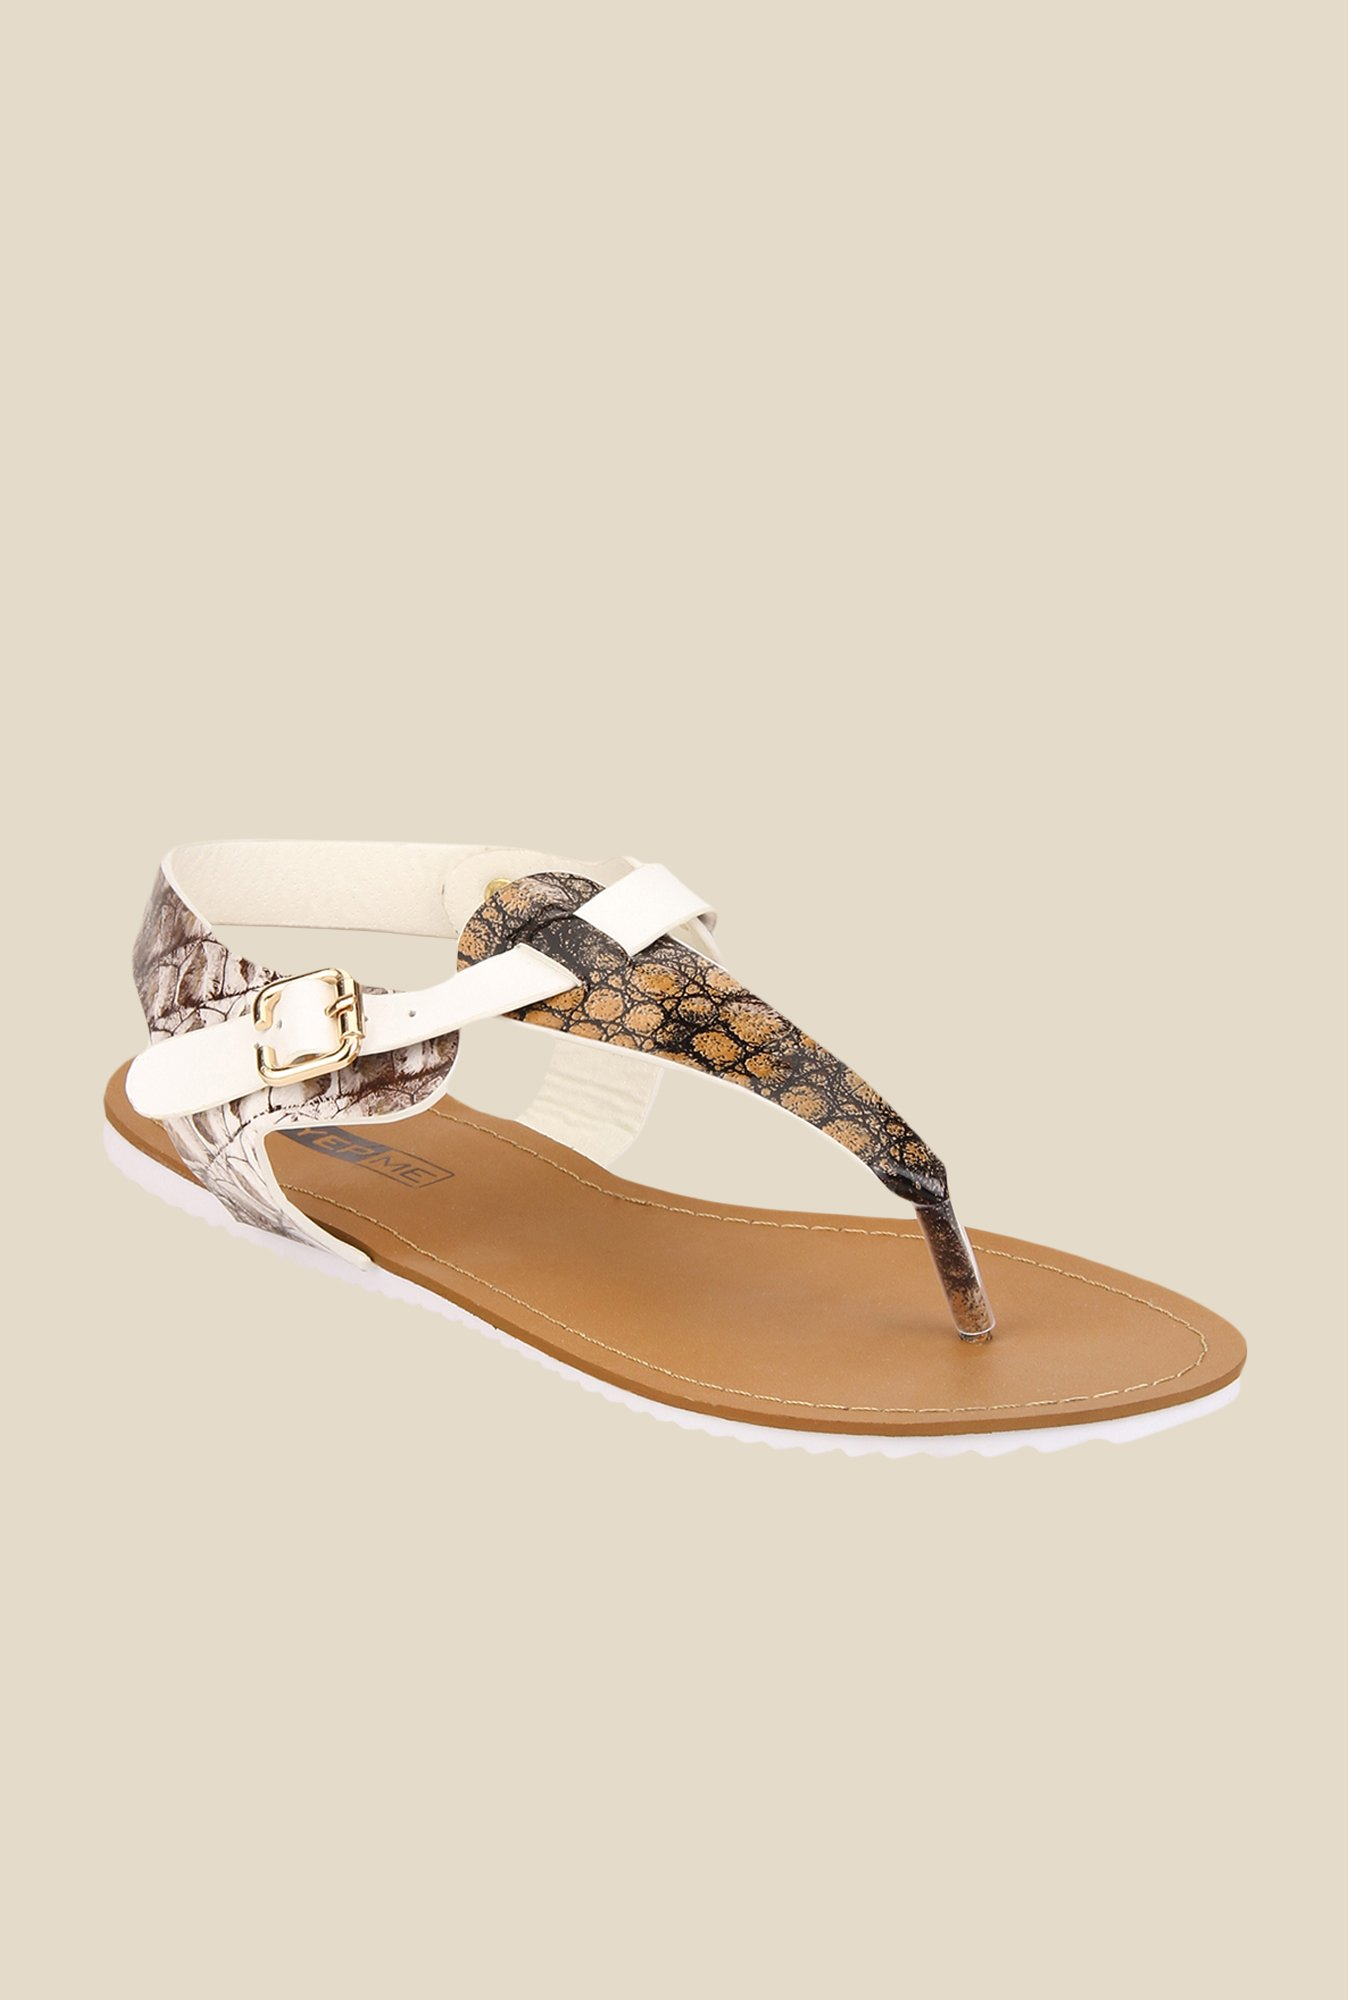 Yepme Brown & White T-Strap Sandals